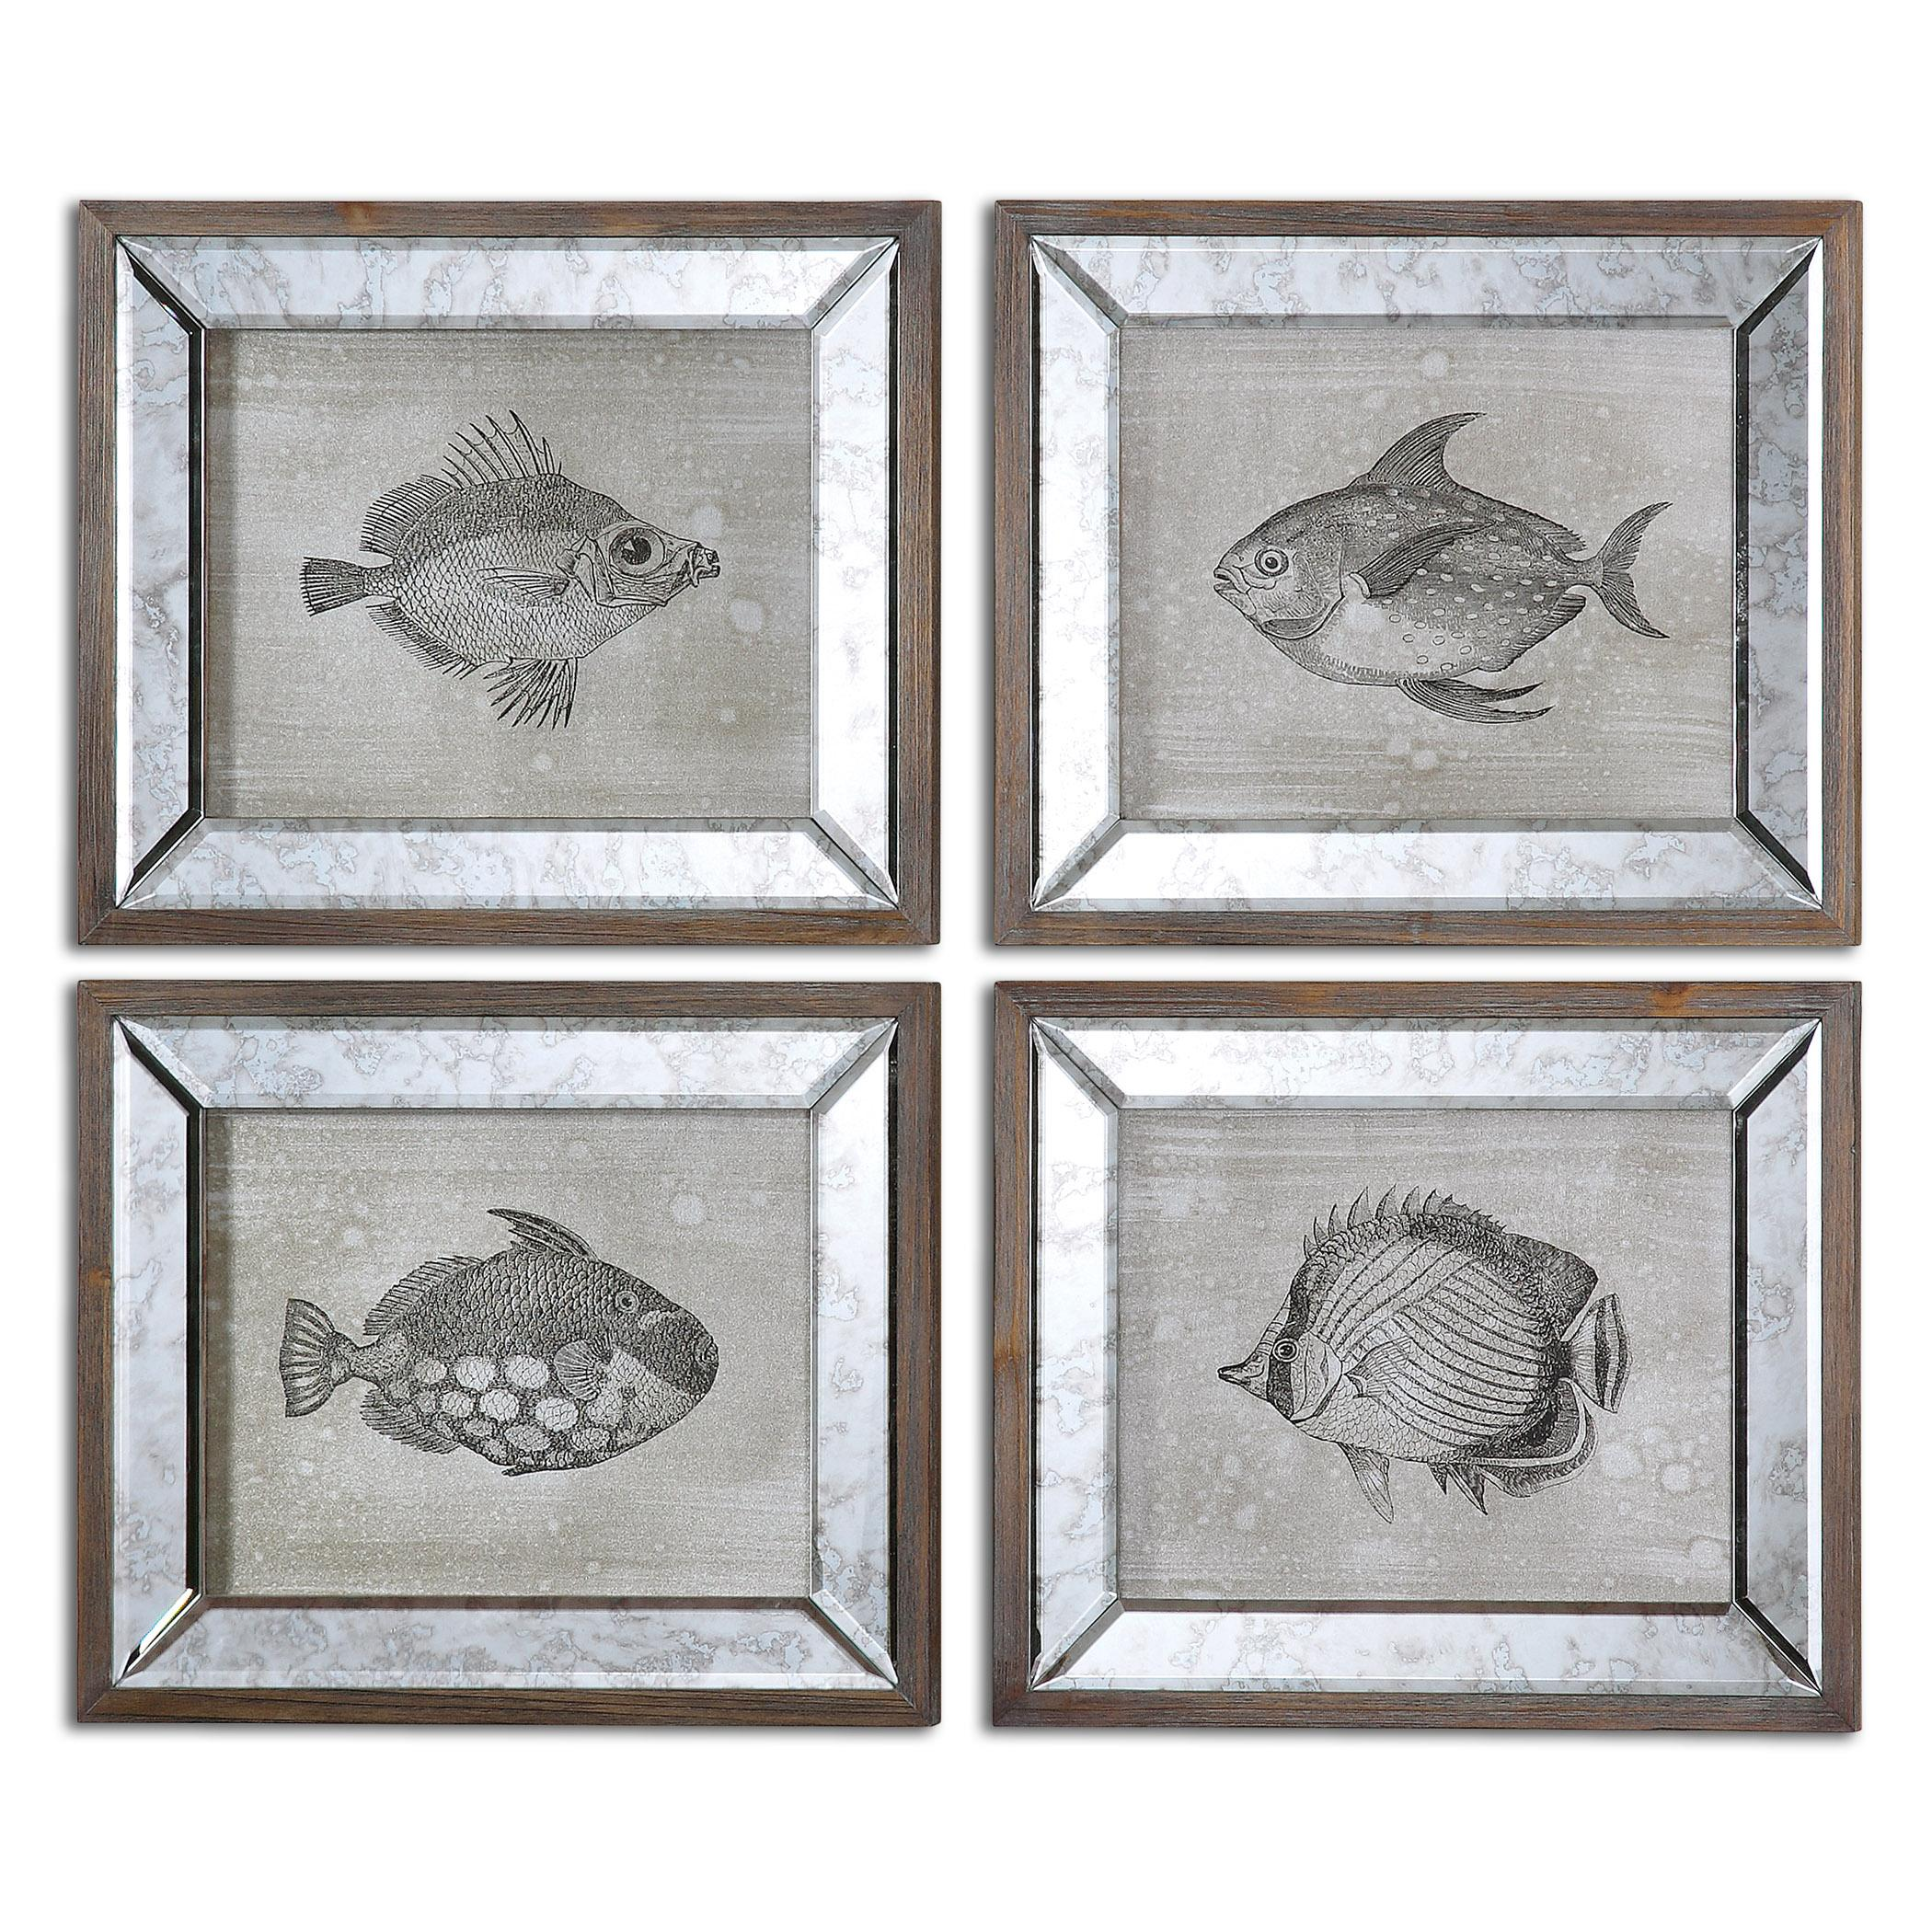 Uttermost Art Mirrored Fish Framed Art Set of 4 - Item Number: 41700